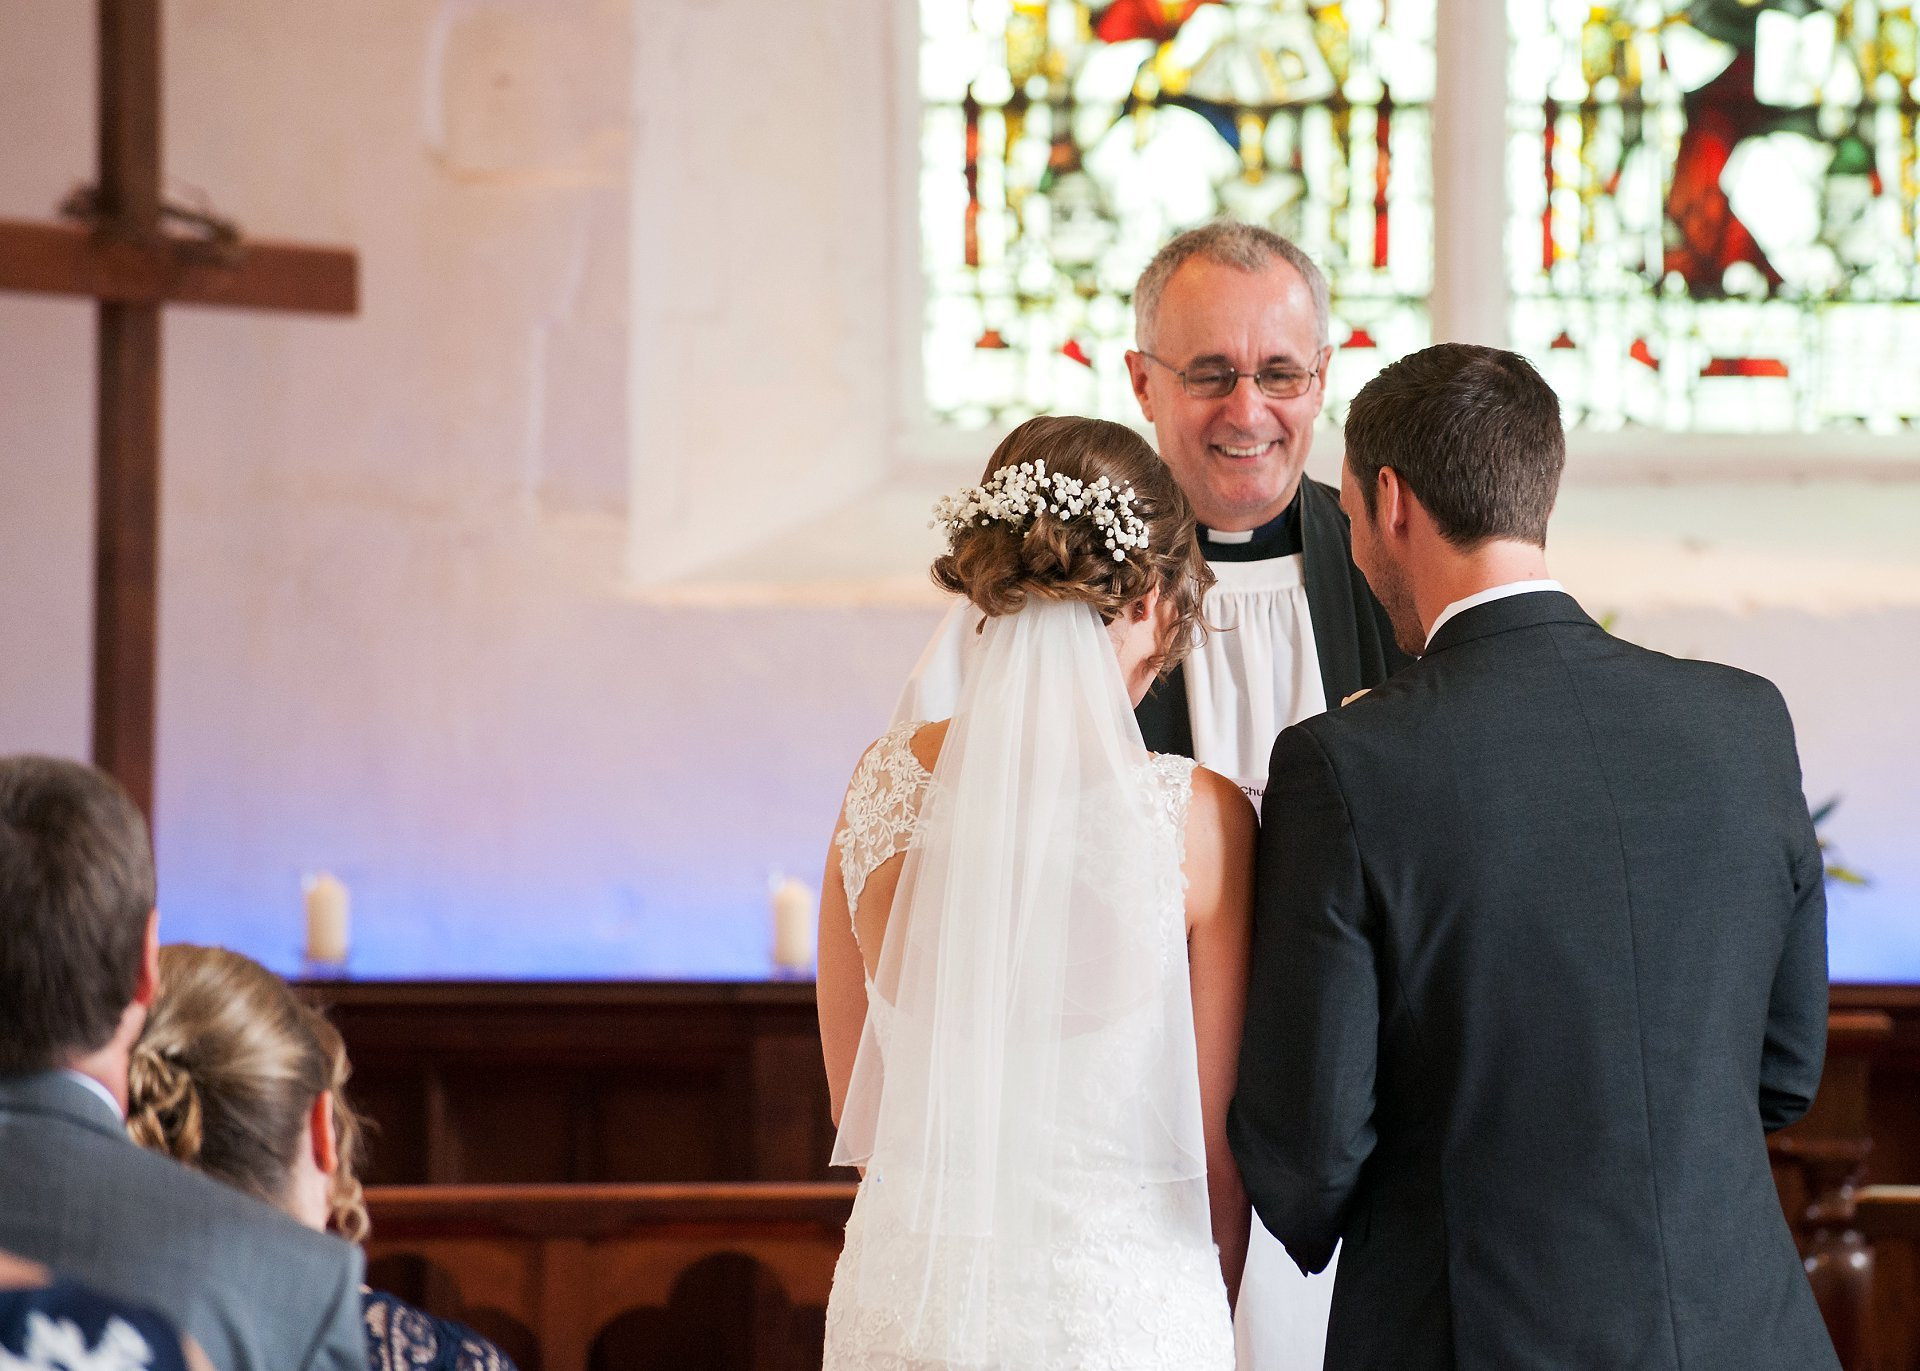 The vicar Ross Terranova smiles at the couple during their wedding blessing ceremony at St Peter's Ditton